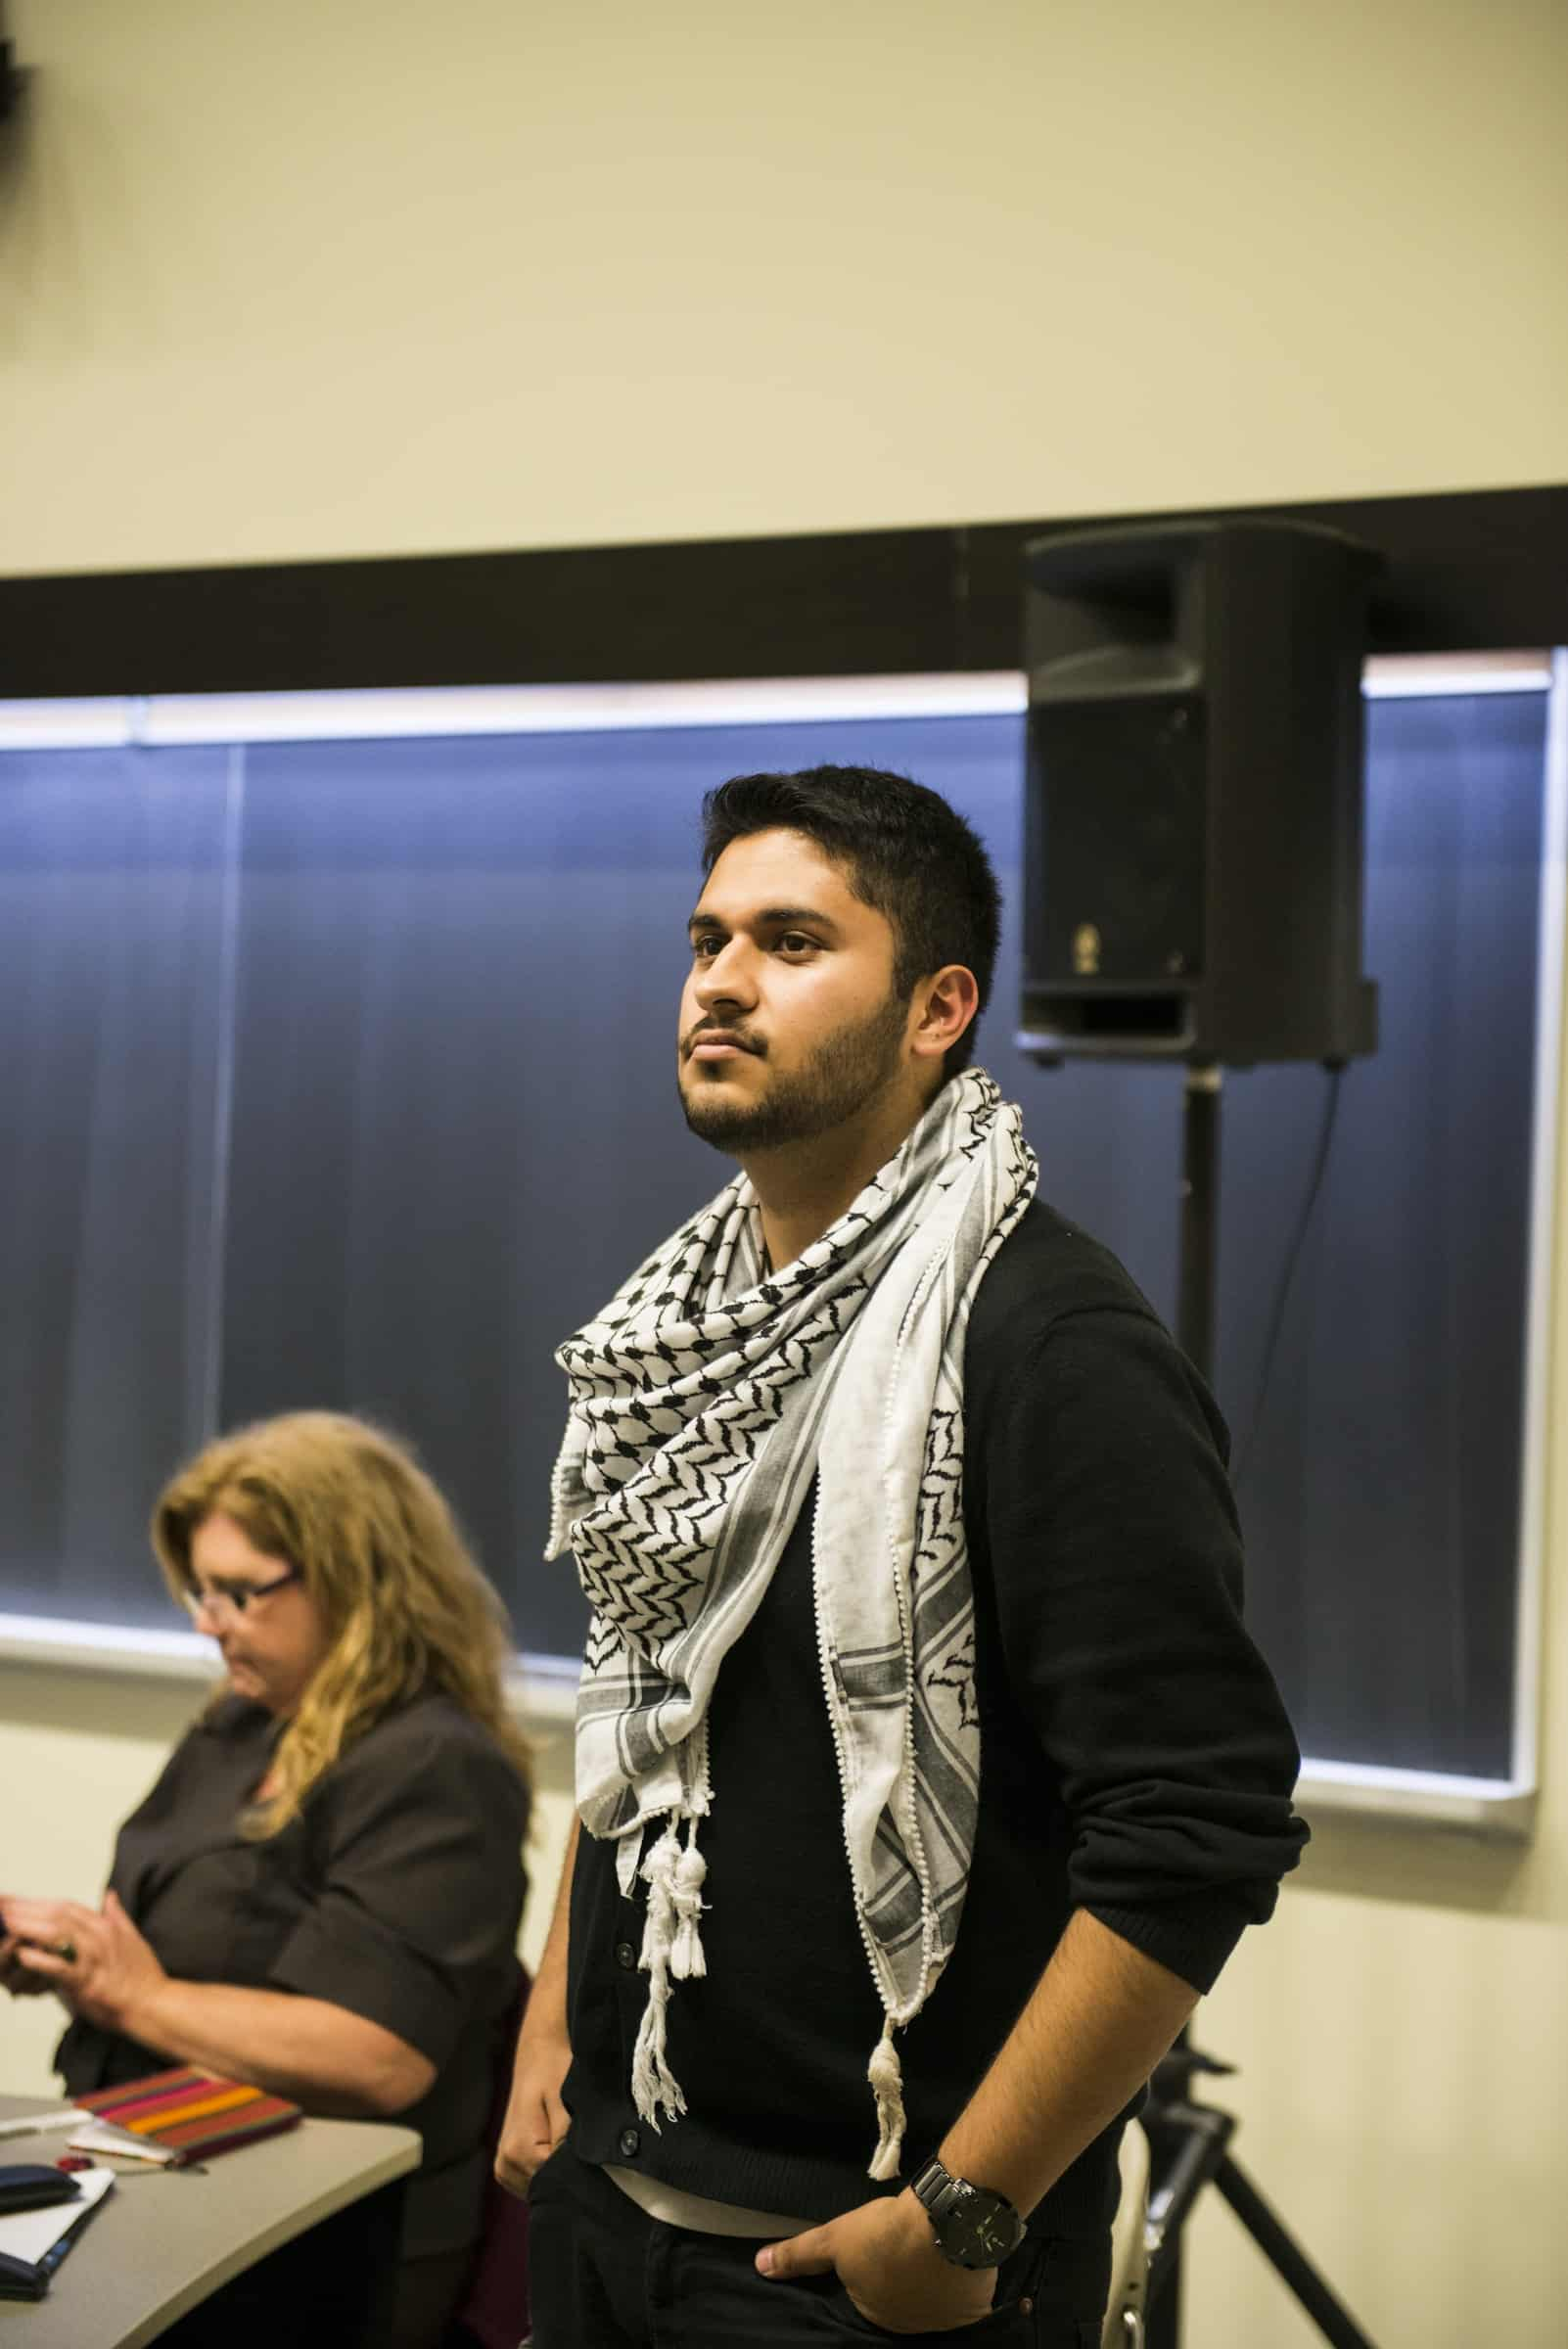 Sajjad to run unopposed for UTSU presidency